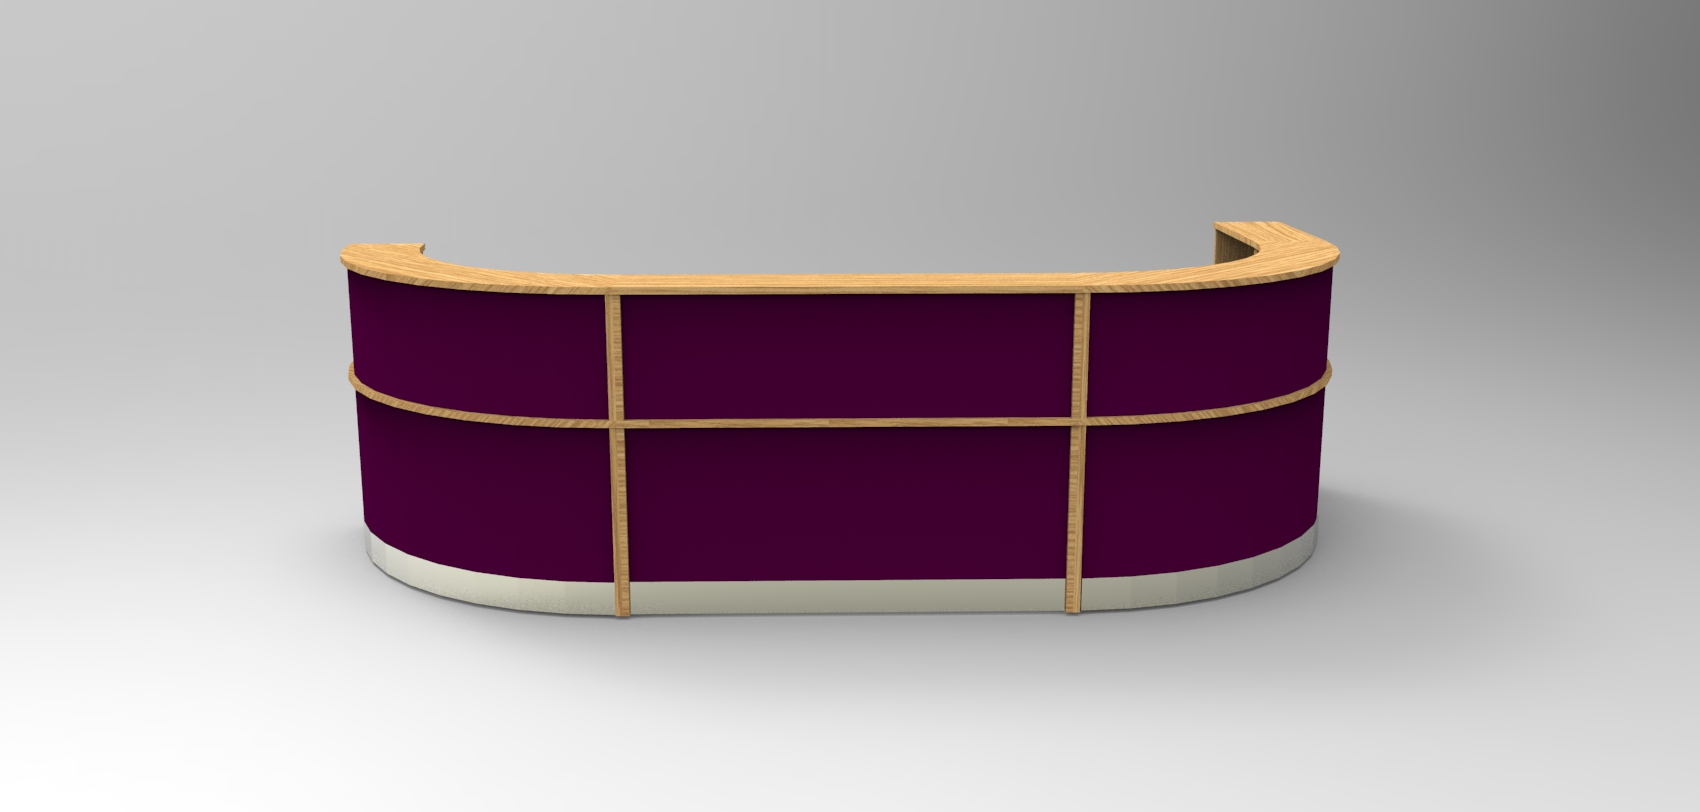 Image 25 Large Flex bespoke reception desk, Oak  with Viola modesty panels